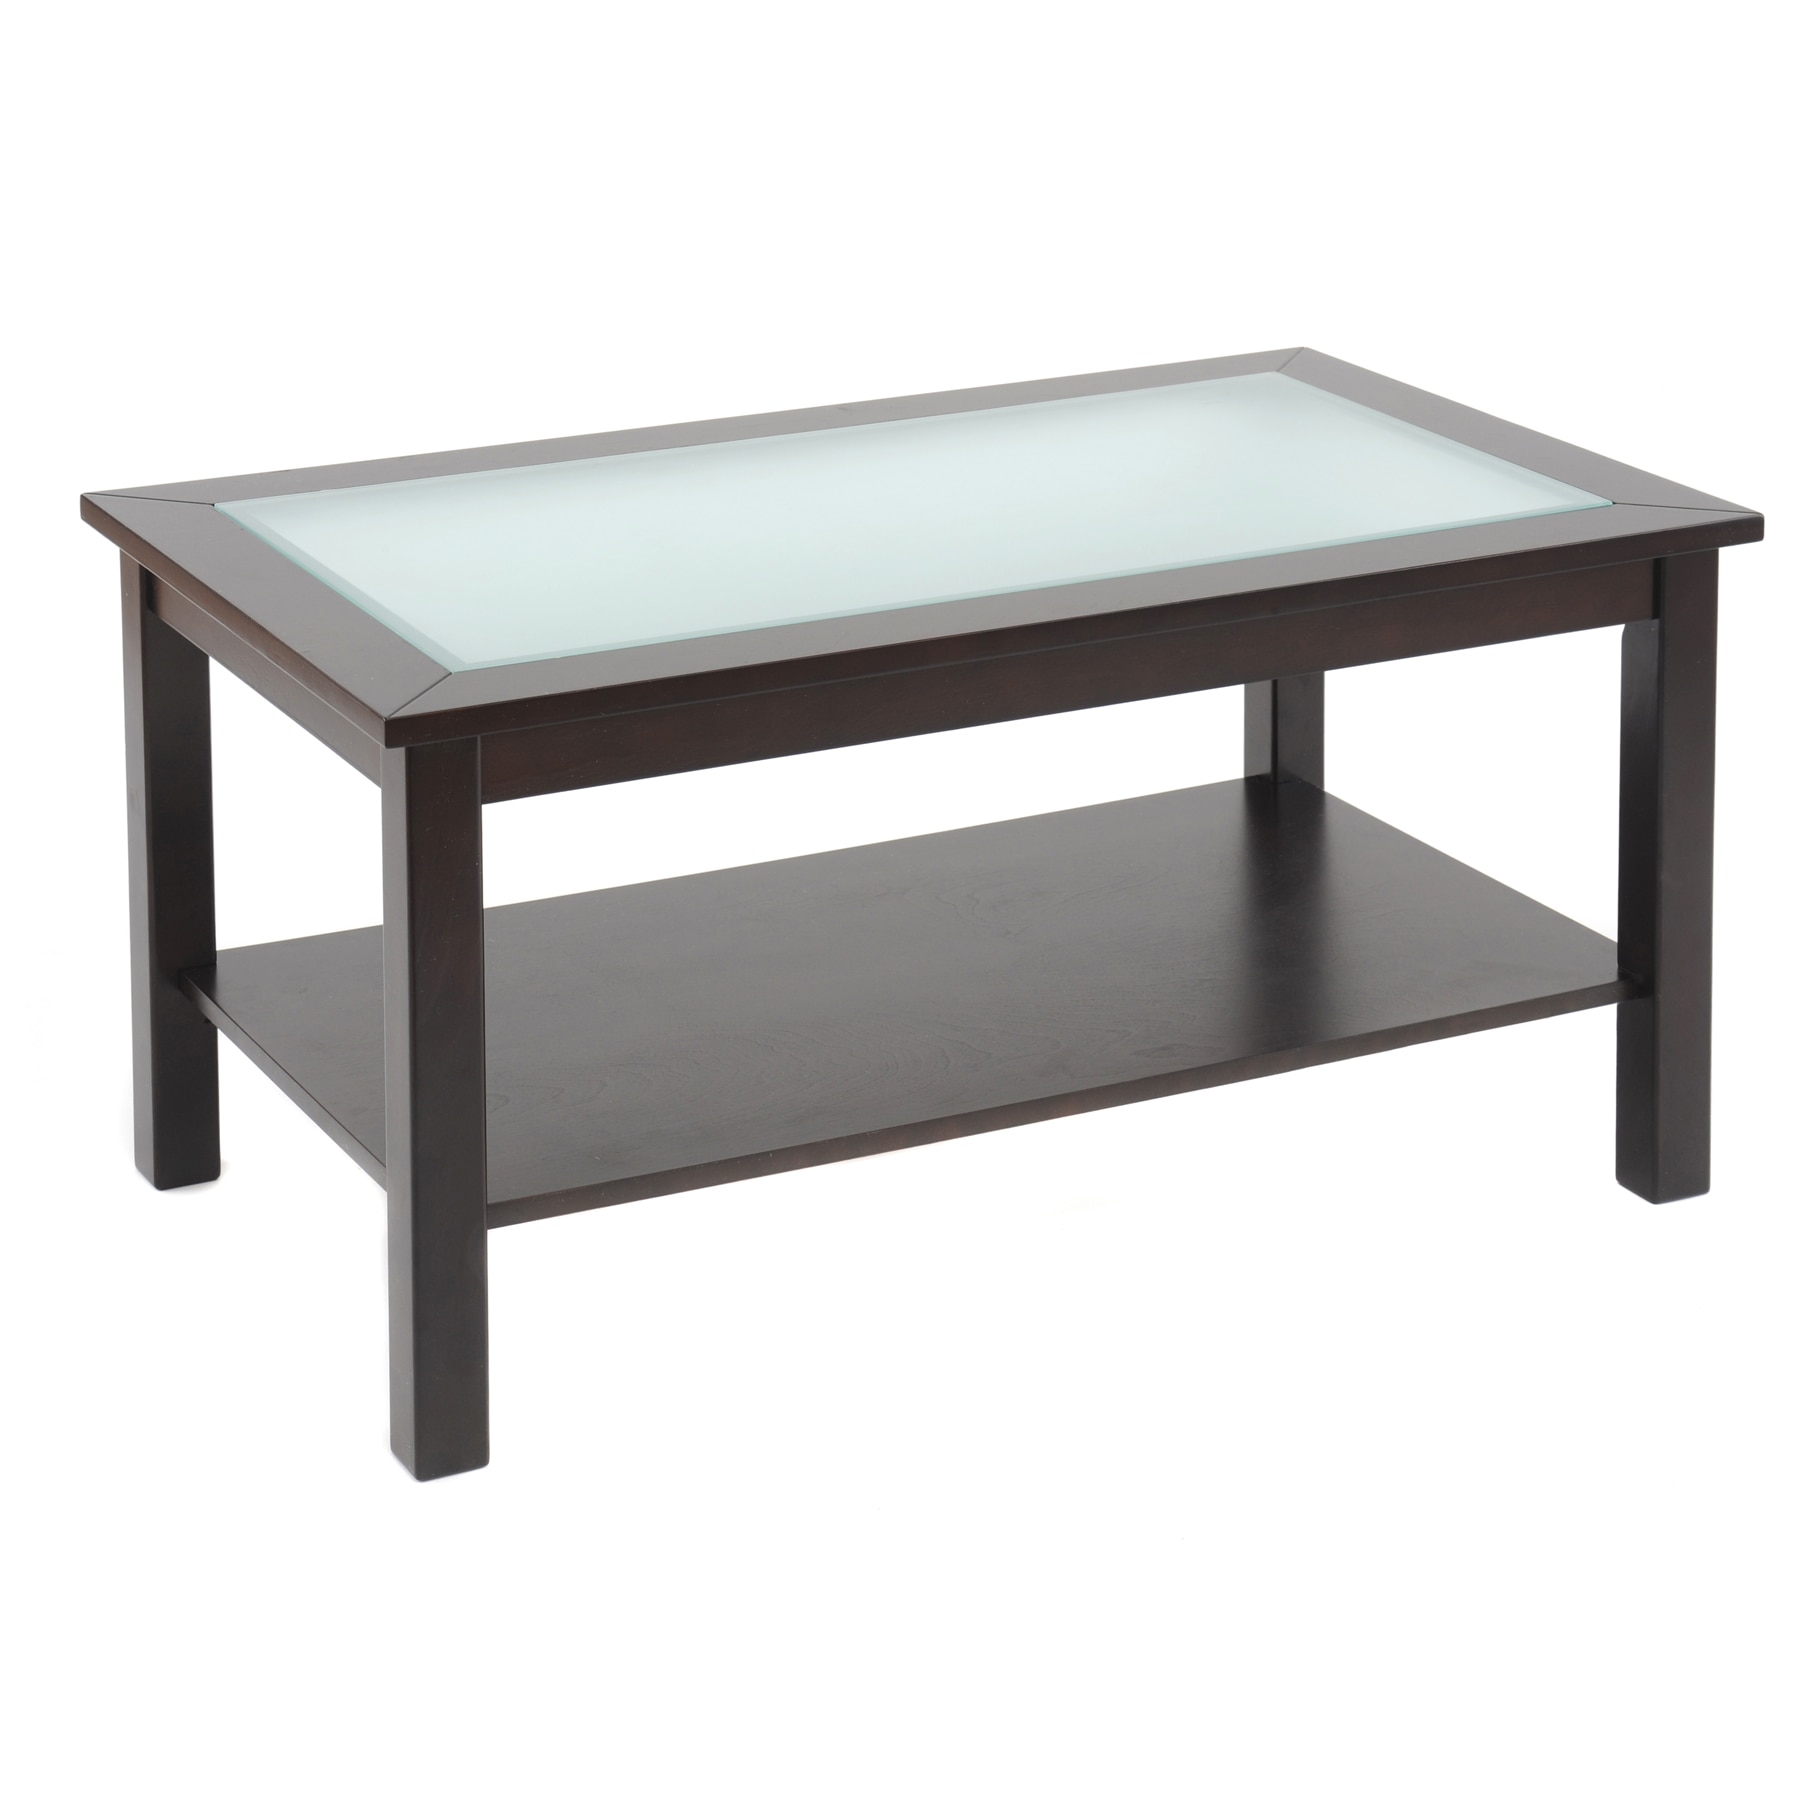 espresso coffee table furniture design gorgeous with sofa amp end tables affordable accent outdoor barbecue black leather chair linen placemats and napkins round wall clock farm